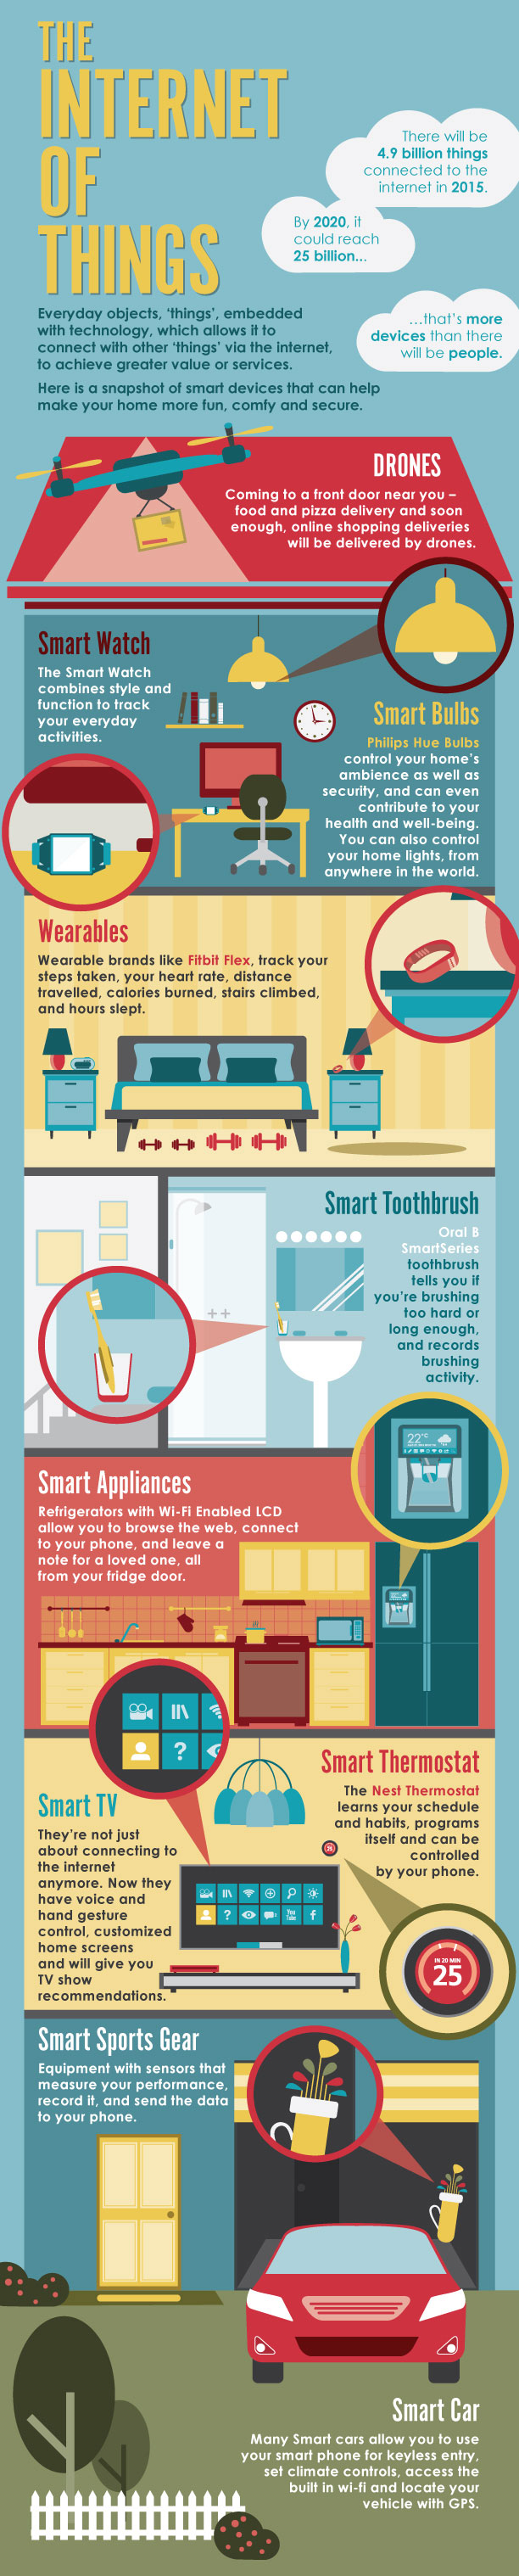 The Internet of Things devices infographic